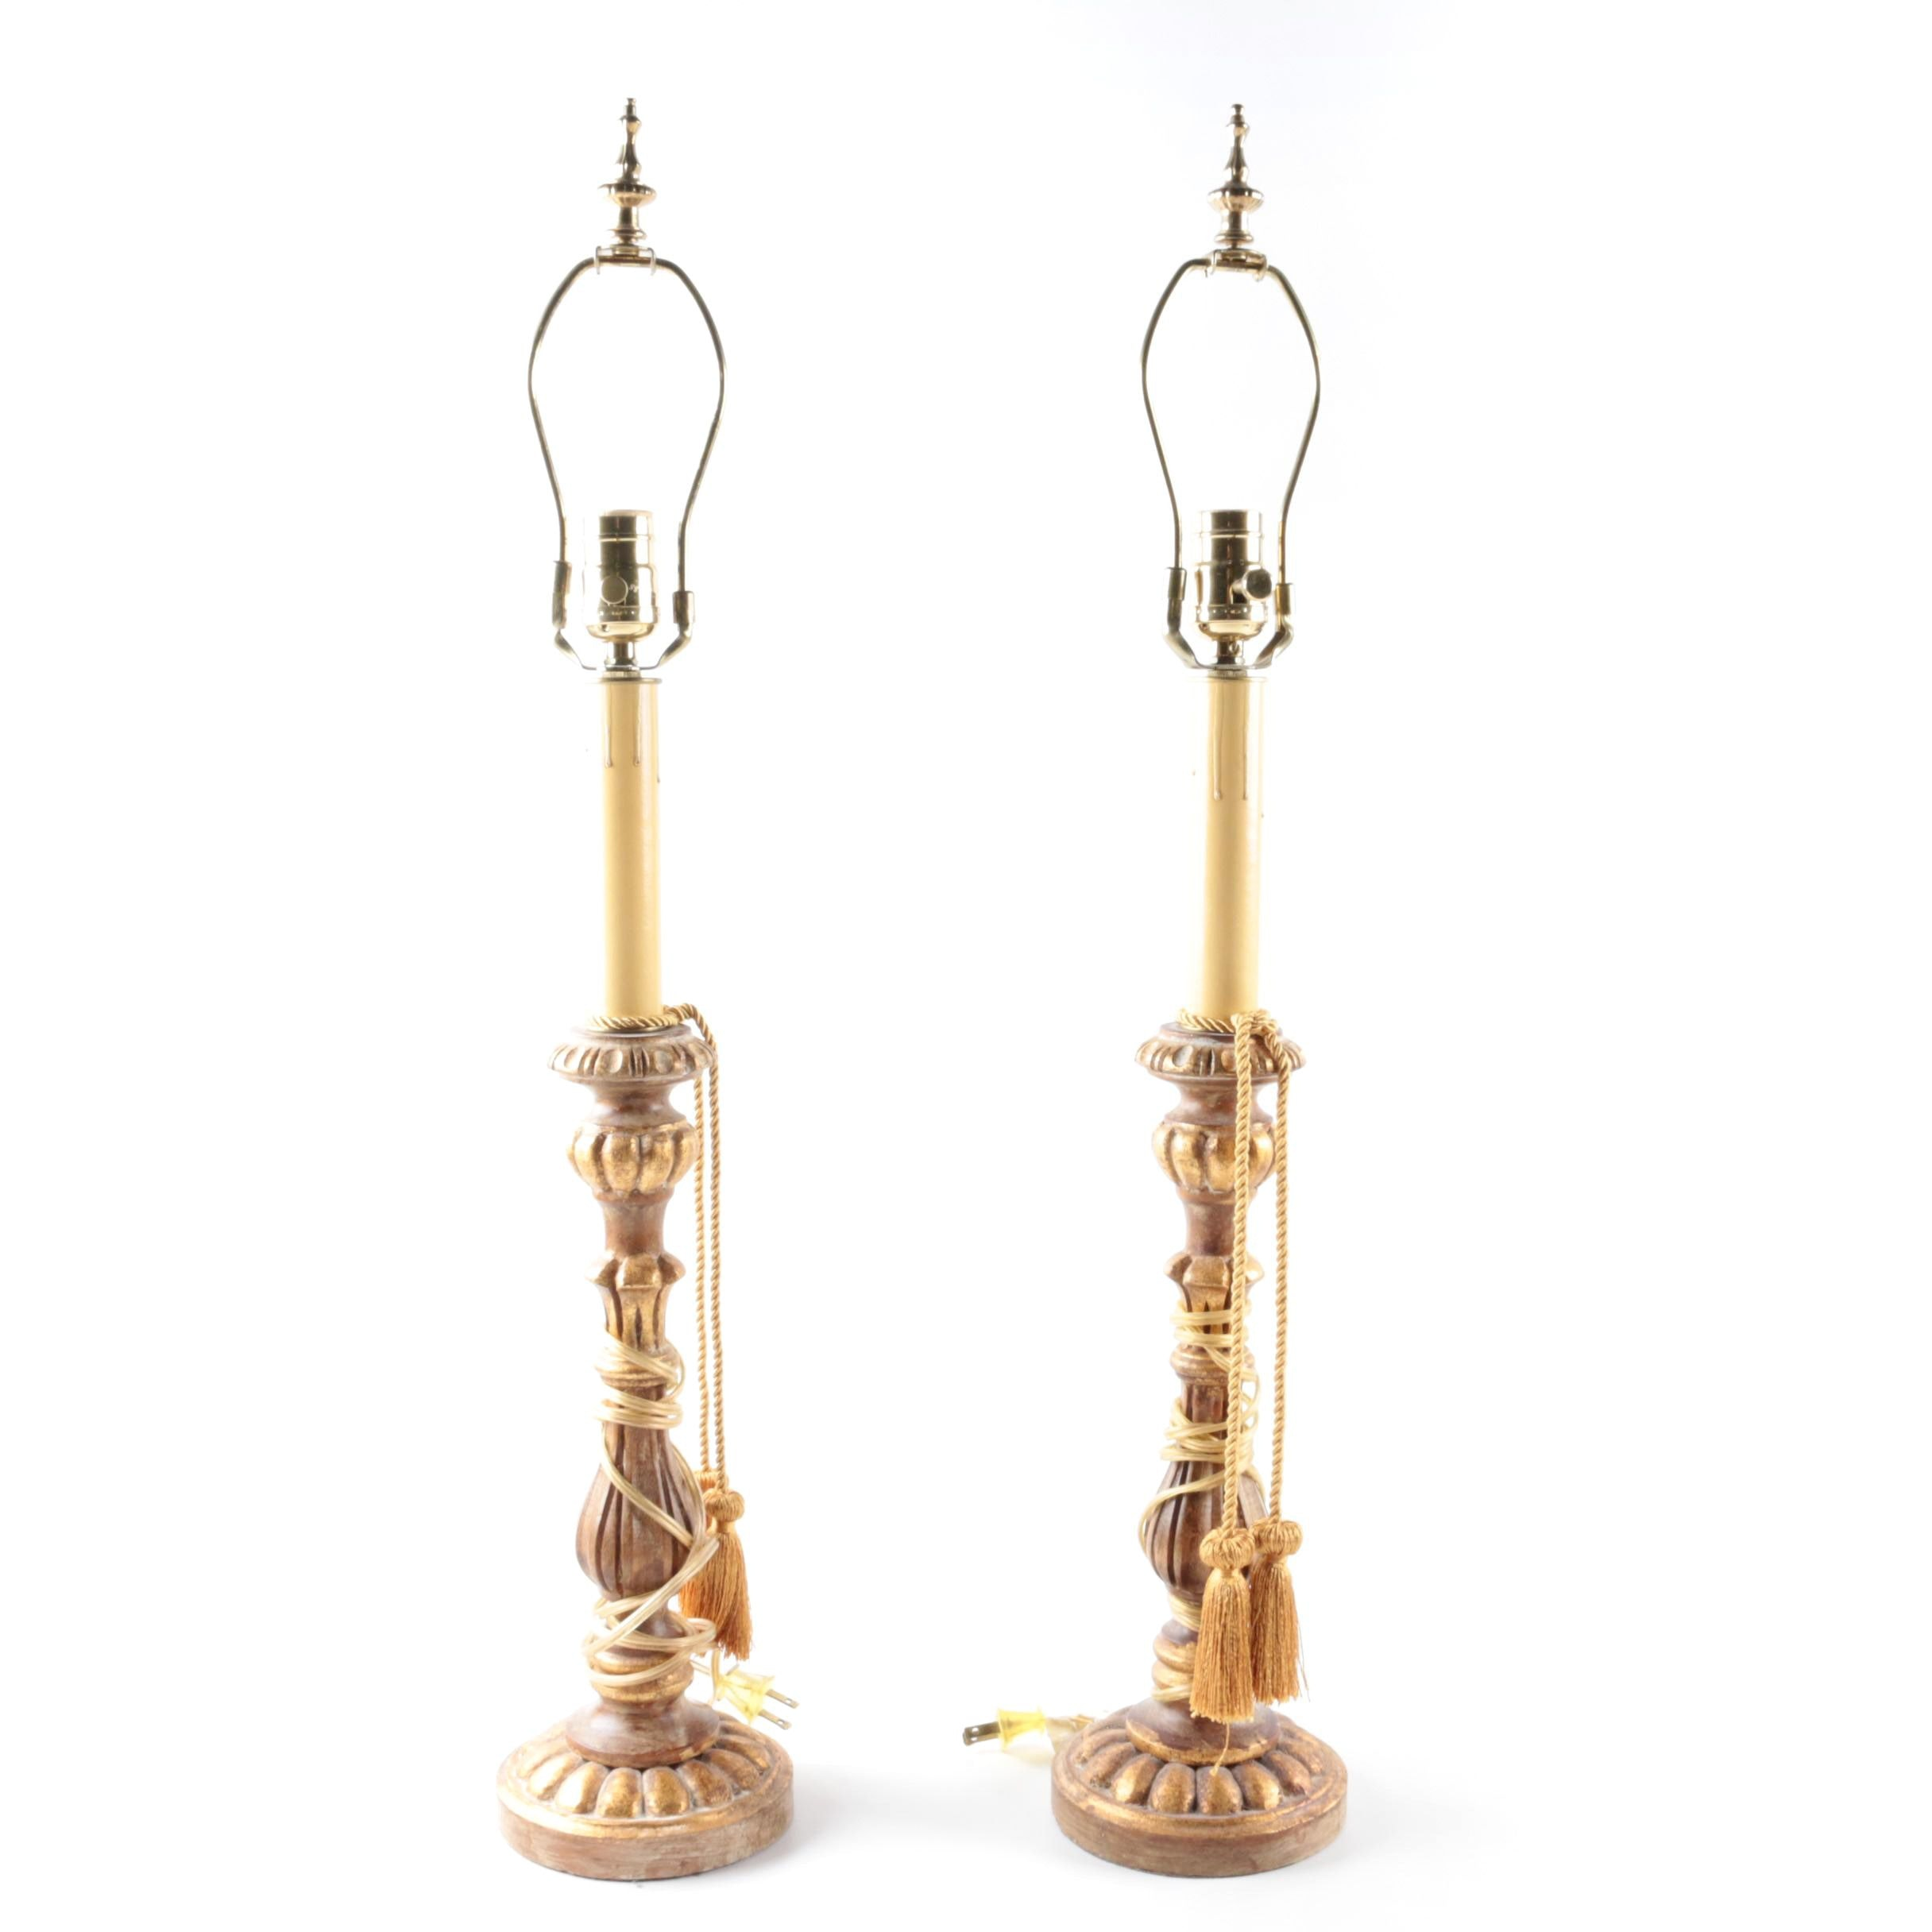 Pair of Decorative Candlestick Lamps